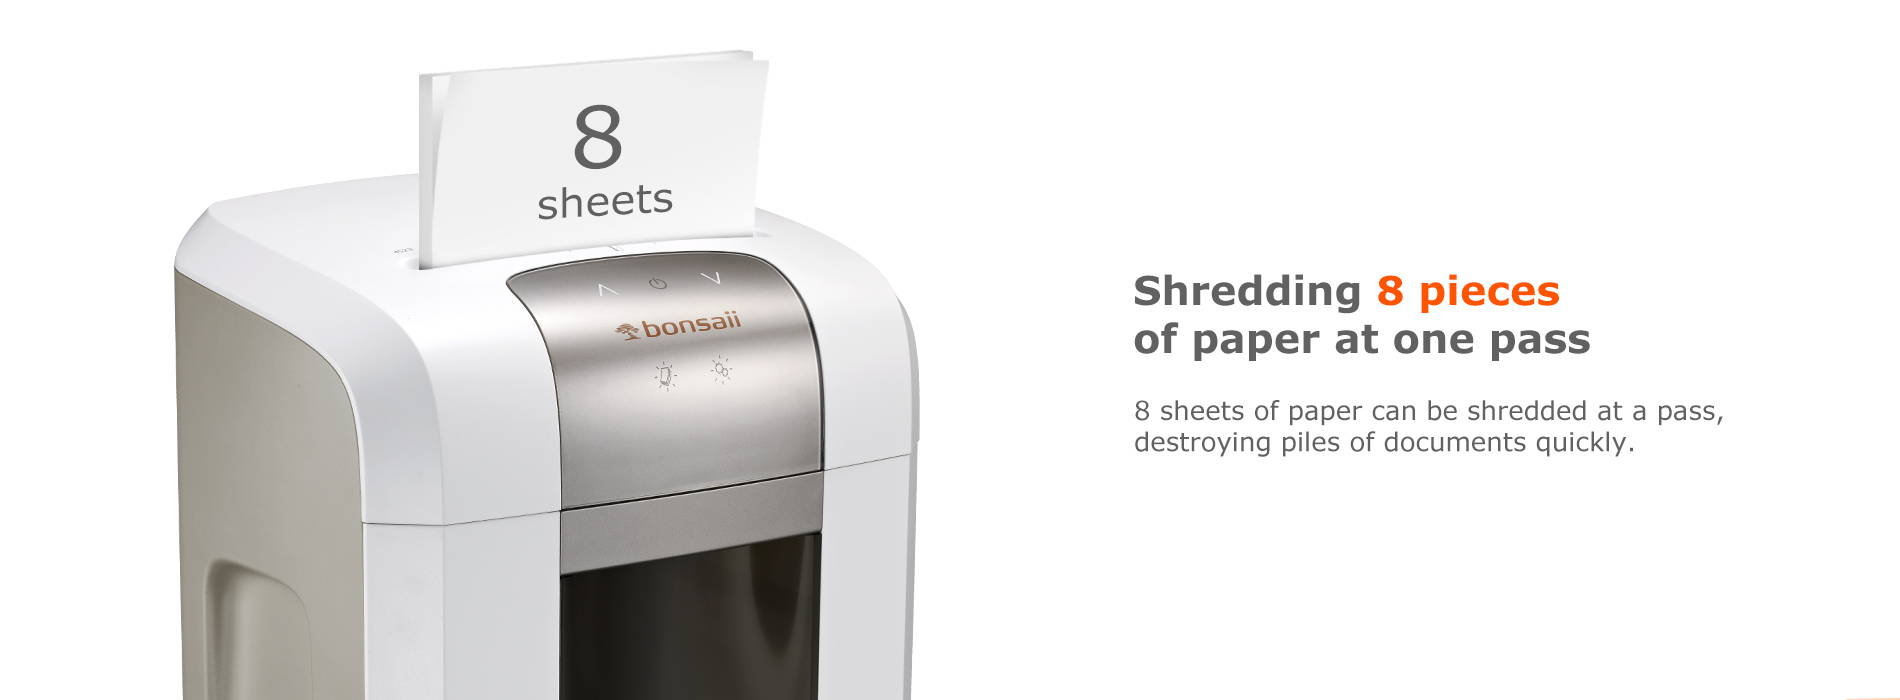 Shredding 8 pieces of paper at one pass 8 sheets of paper can be shredded at a pass, destroying piles of documents quickly.